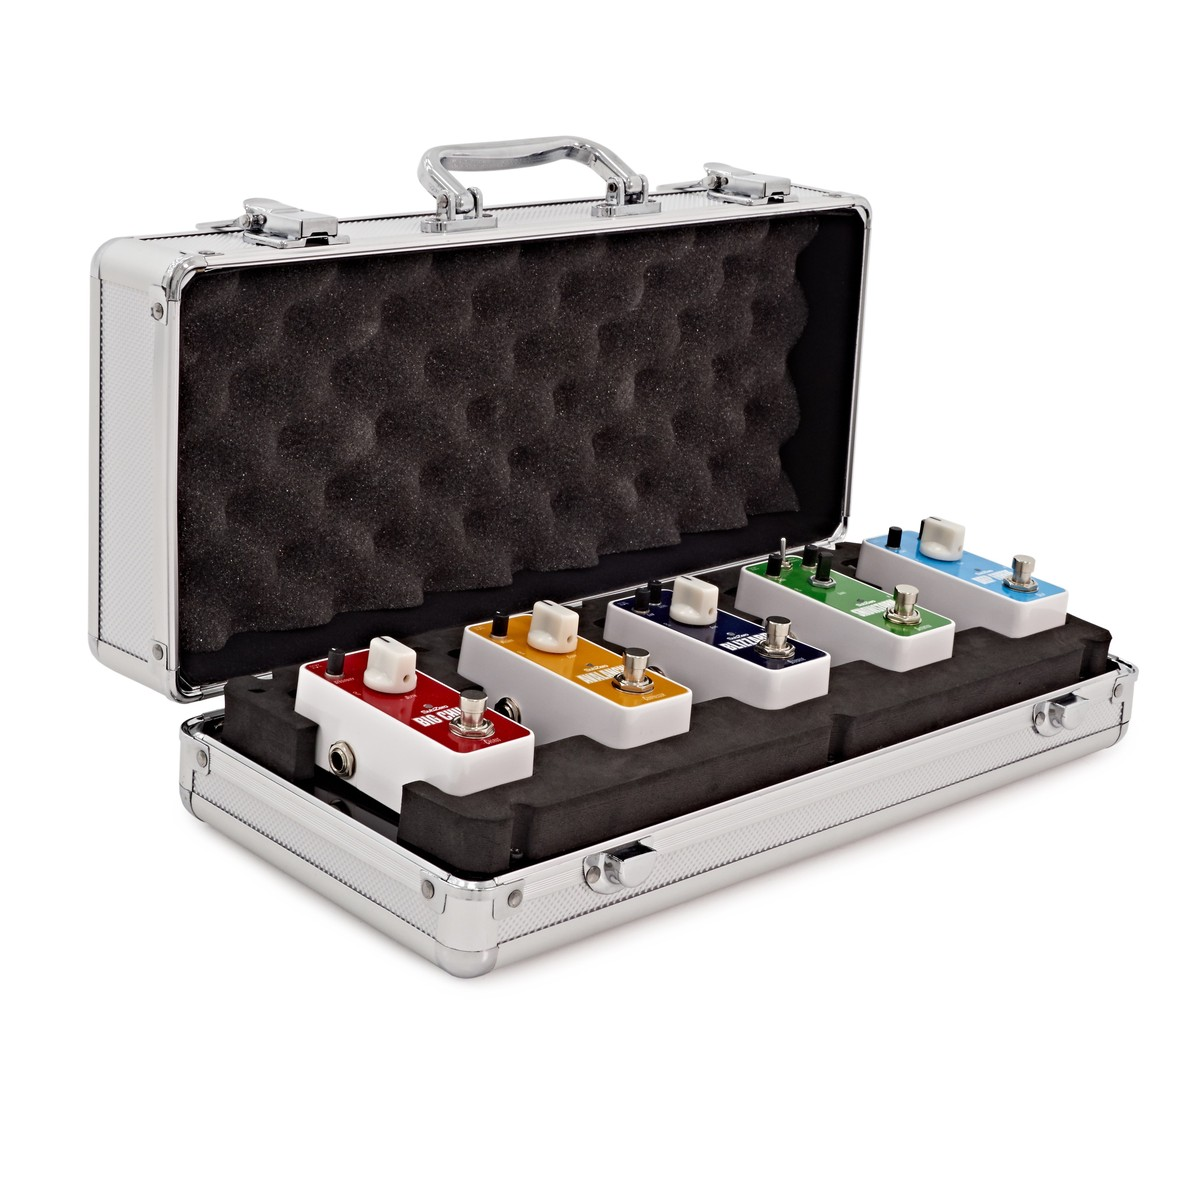 subzero micro guitar pedal and pedal board rock pack at gear4music. Black Bedroom Furniture Sets. Home Design Ideas